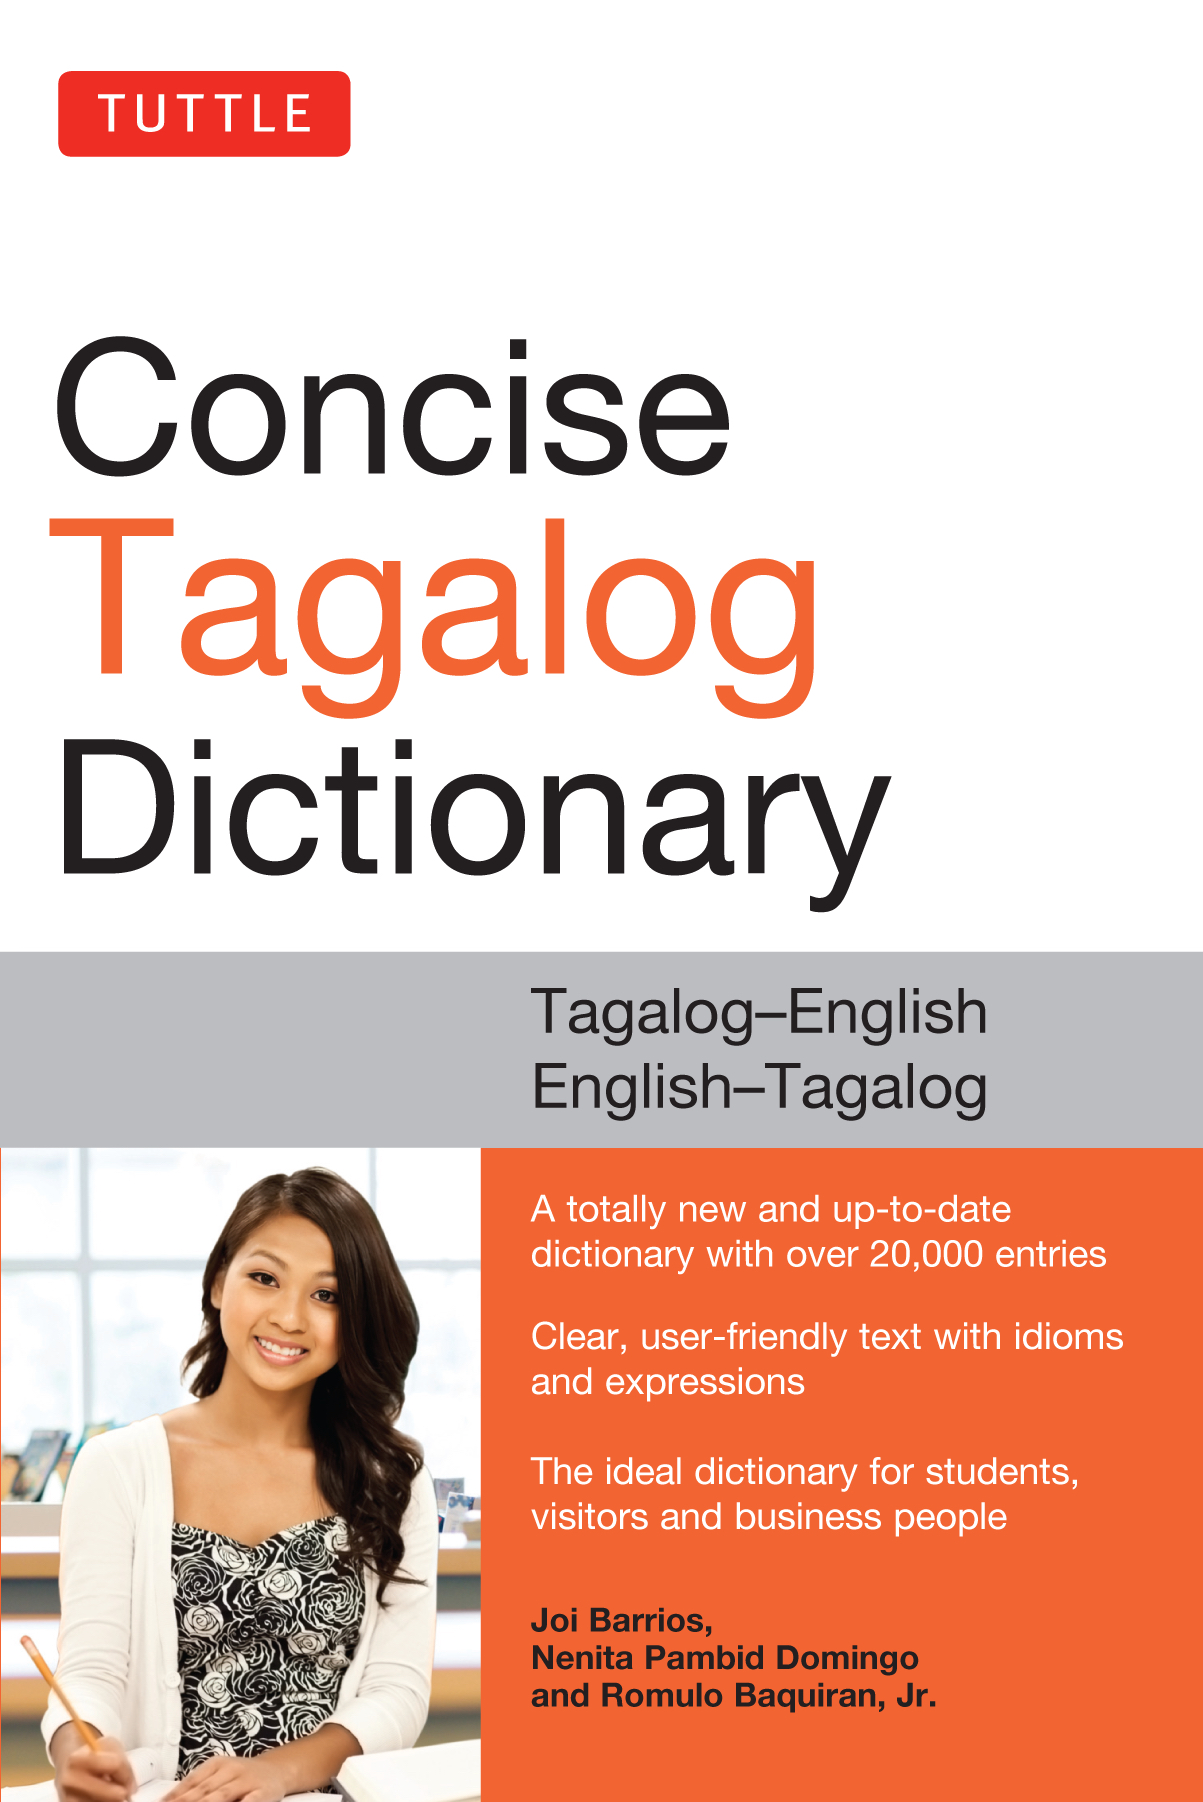 dating tagalog to english 18 filipino words you can't translate to english you can try your best but you won't succeed.